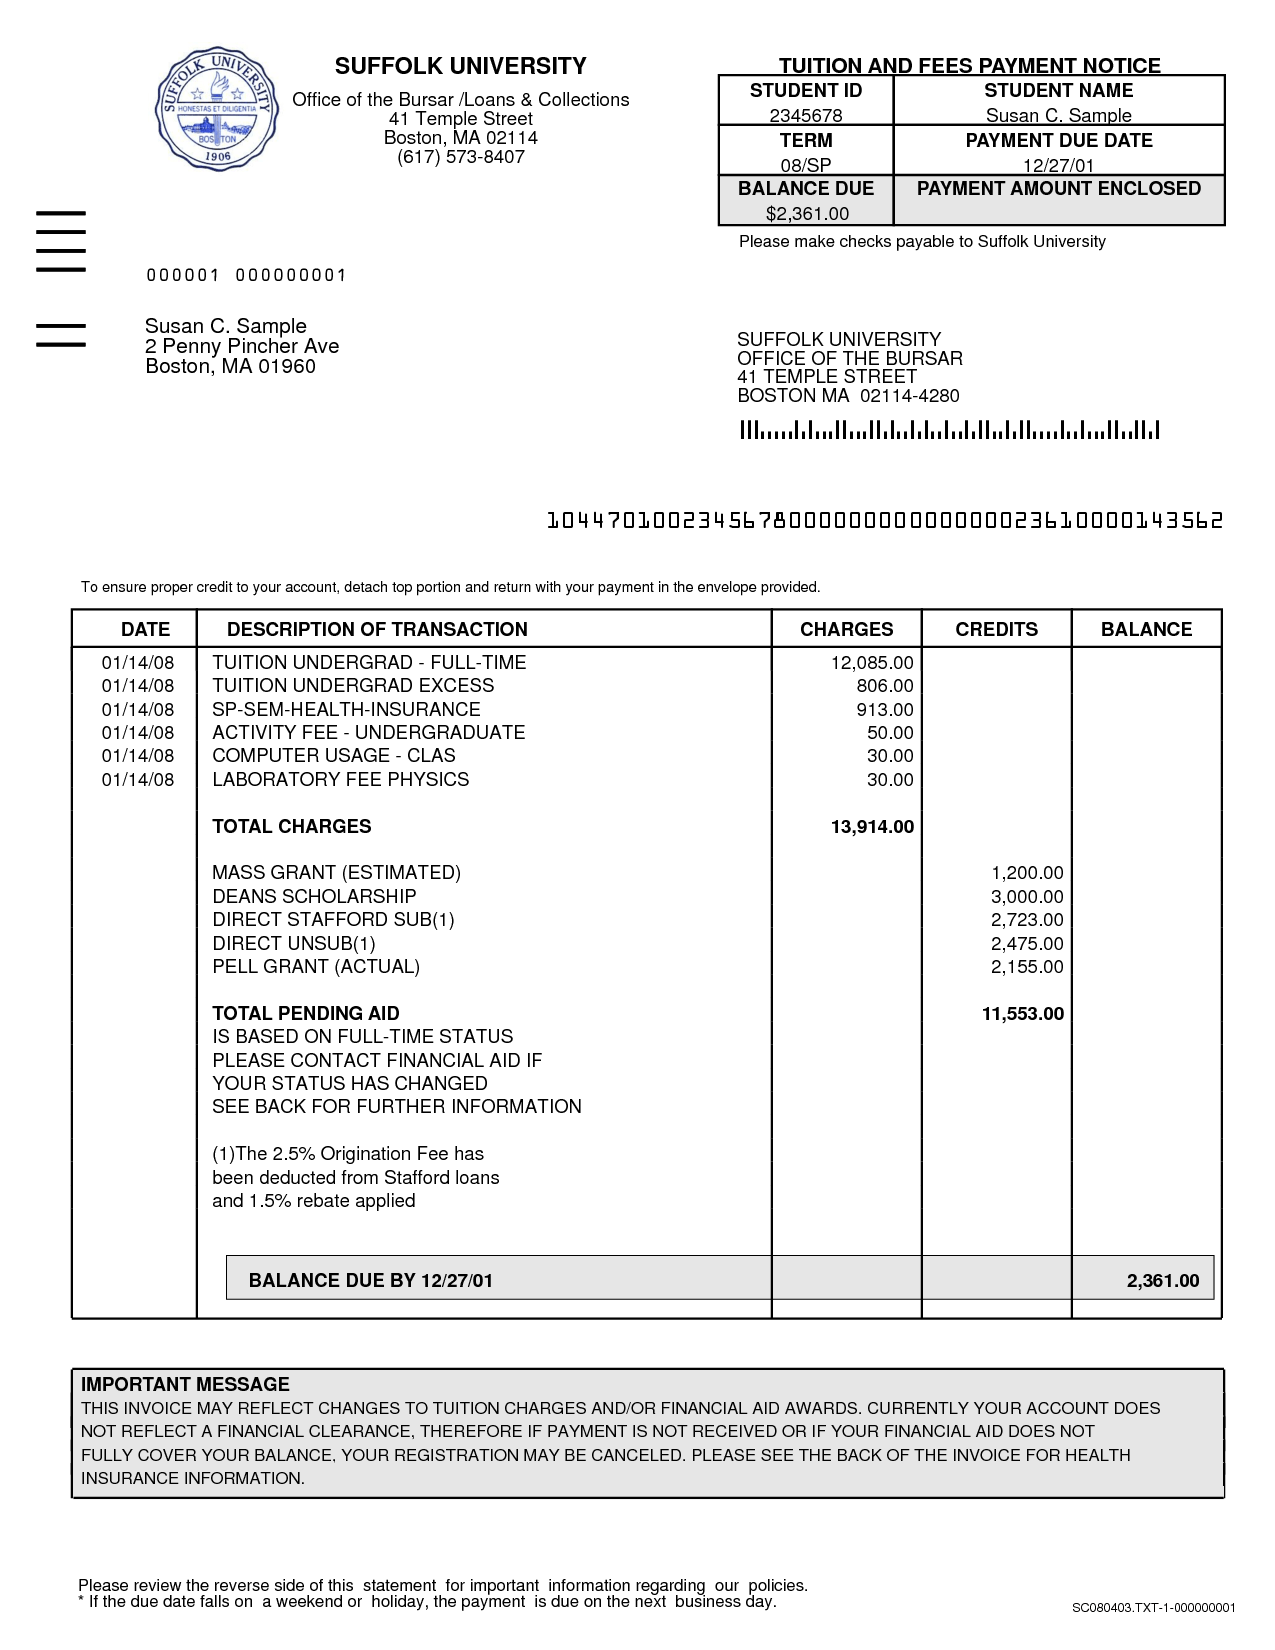 Consultant Invoice Template Free and Legal Invoice Template Free Excel Templates